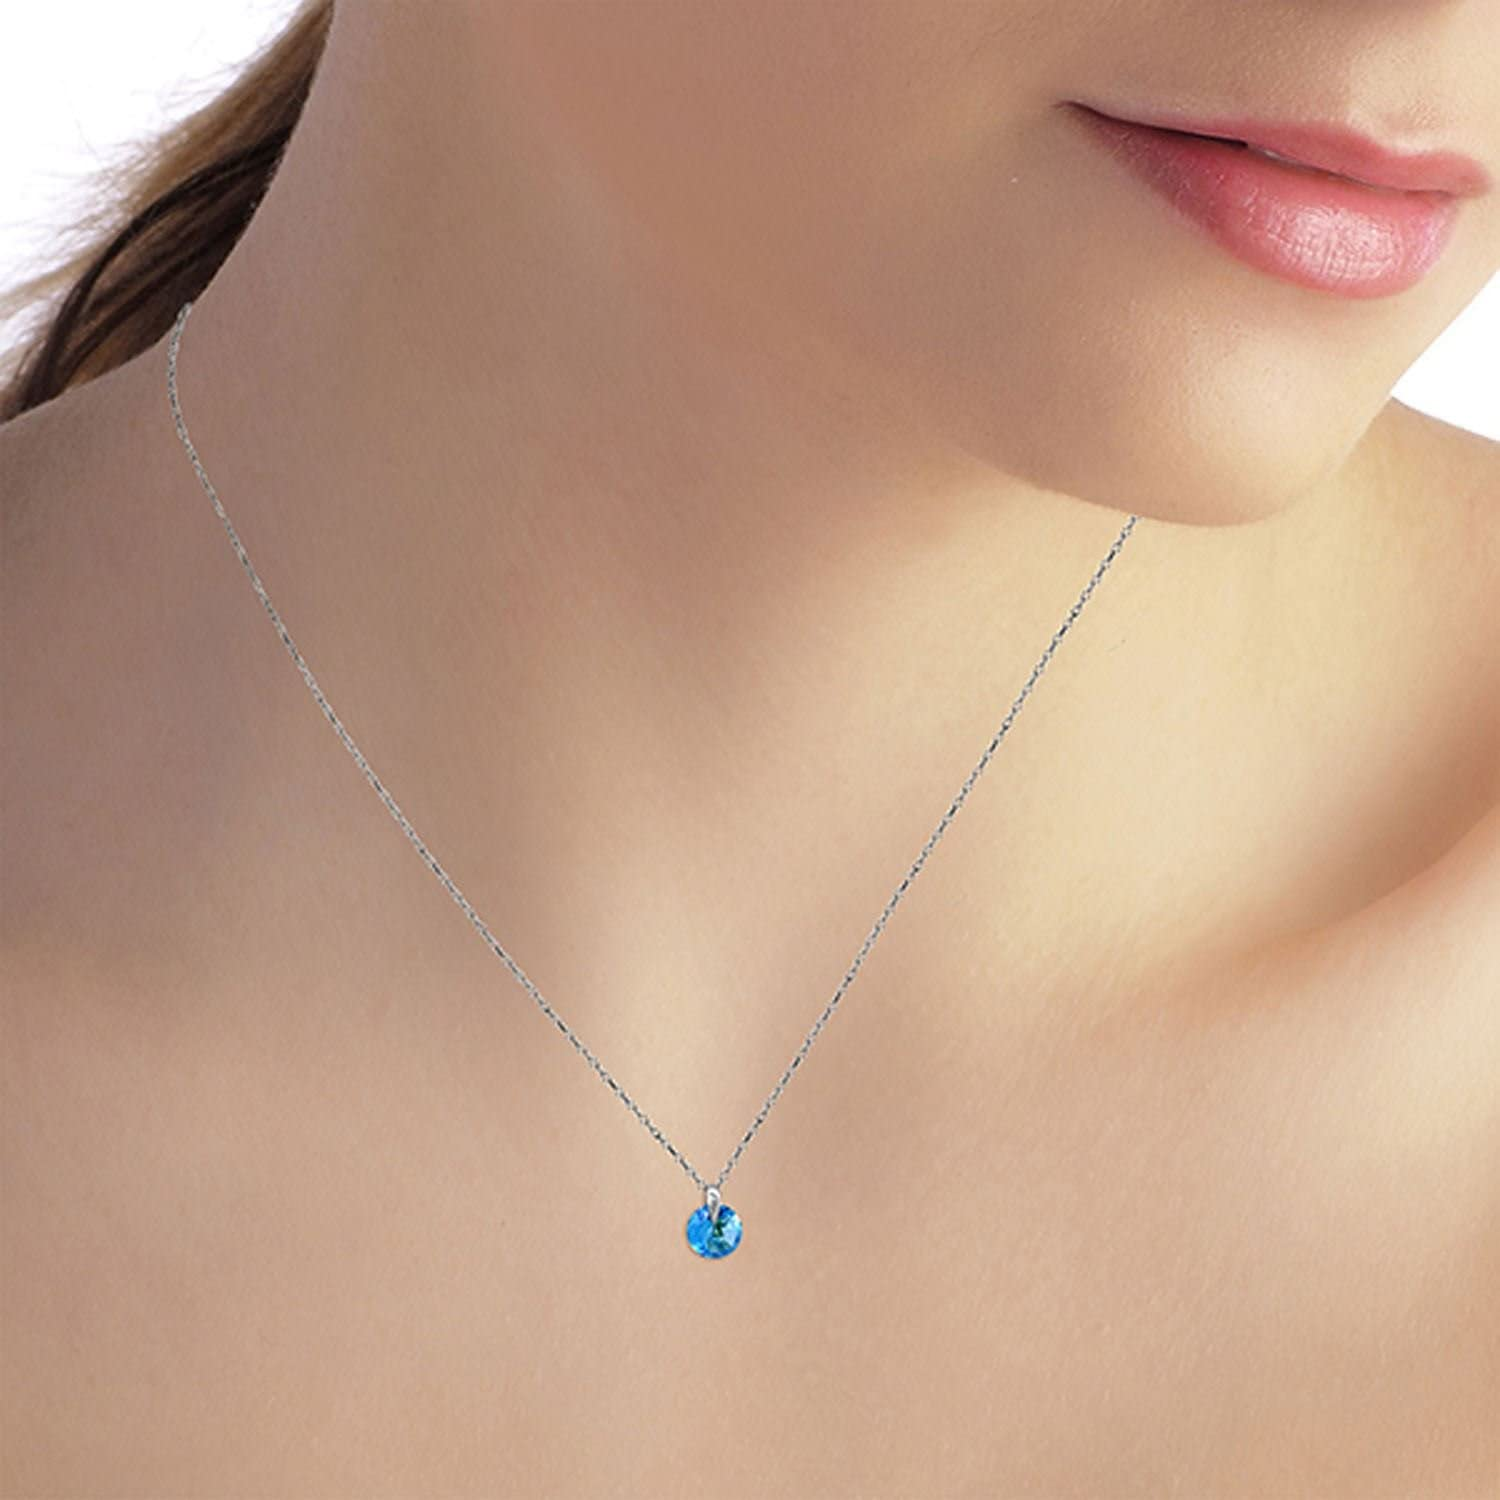 ALARRI 1 CTW 14K Solid White Gold Friend Indeed Blue Topaz Necklace with 18 Inch Chain Length